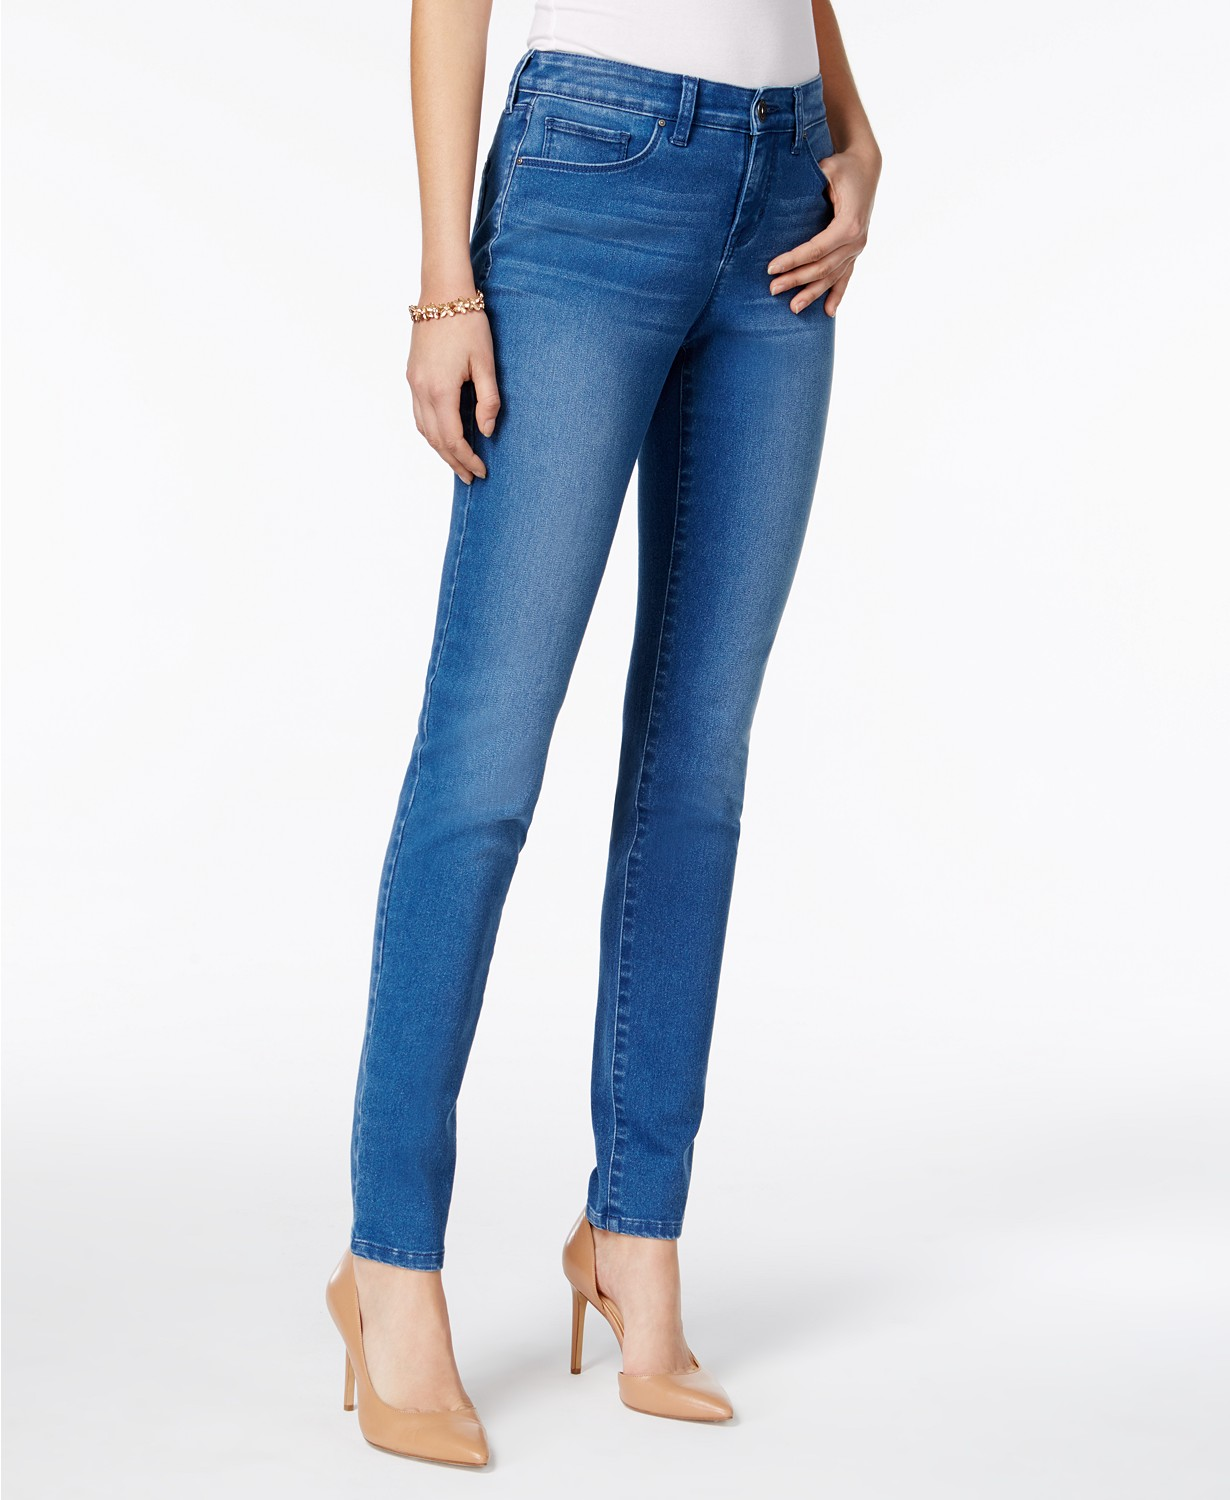 style & co curvy fit skinny jeans